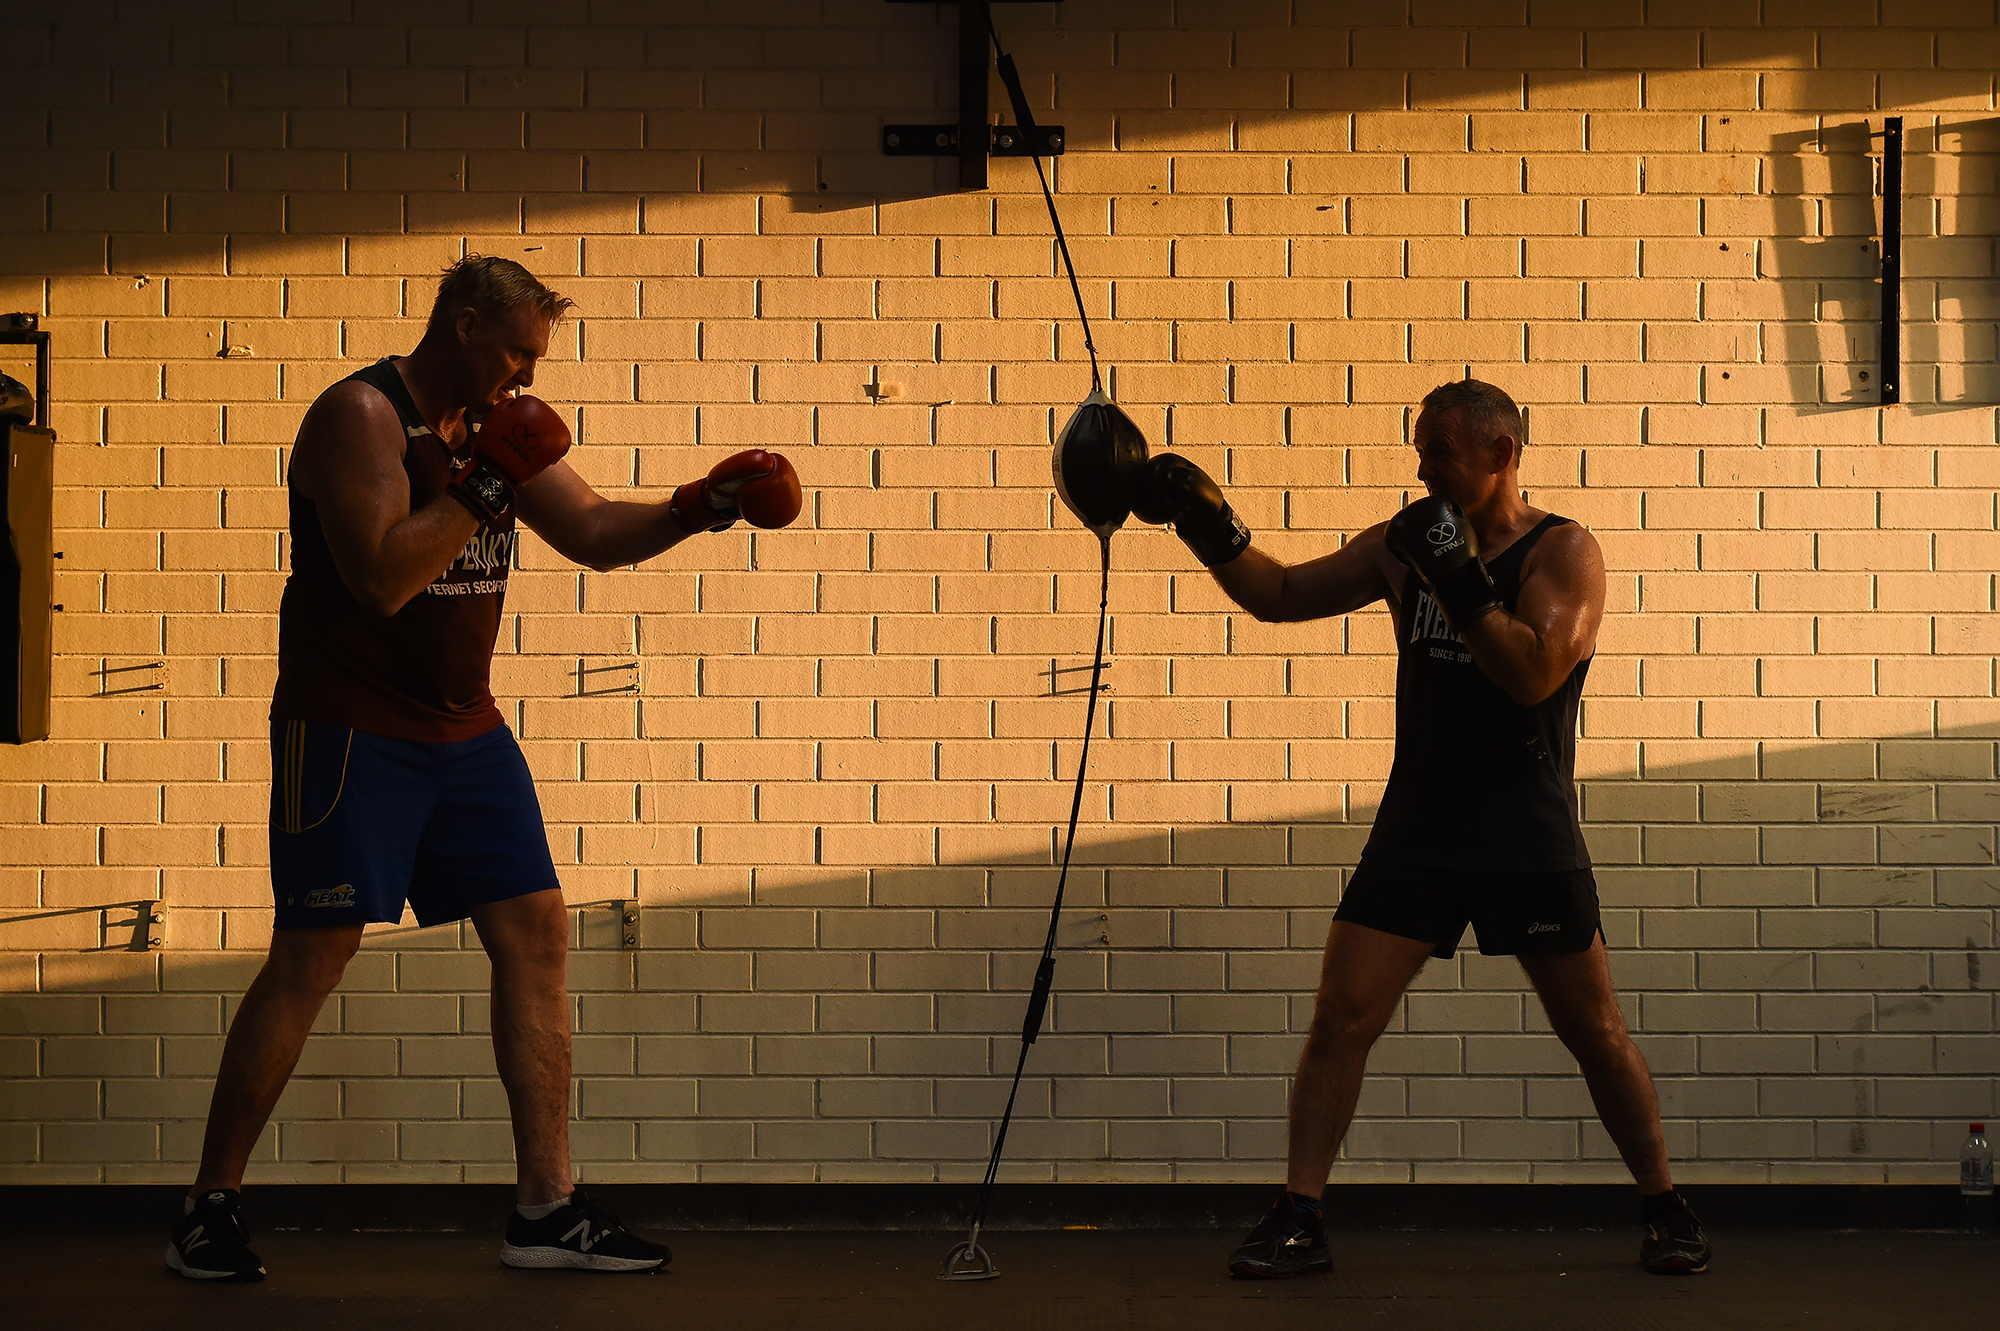 (Photo Mark Jesser) Albury.Michael Buchanan and Kenny Howe at Adrenaline training. Mick is training for a charity bout at Wodonga in March. PICTURED: Kenny Howe and Michael Buchanan